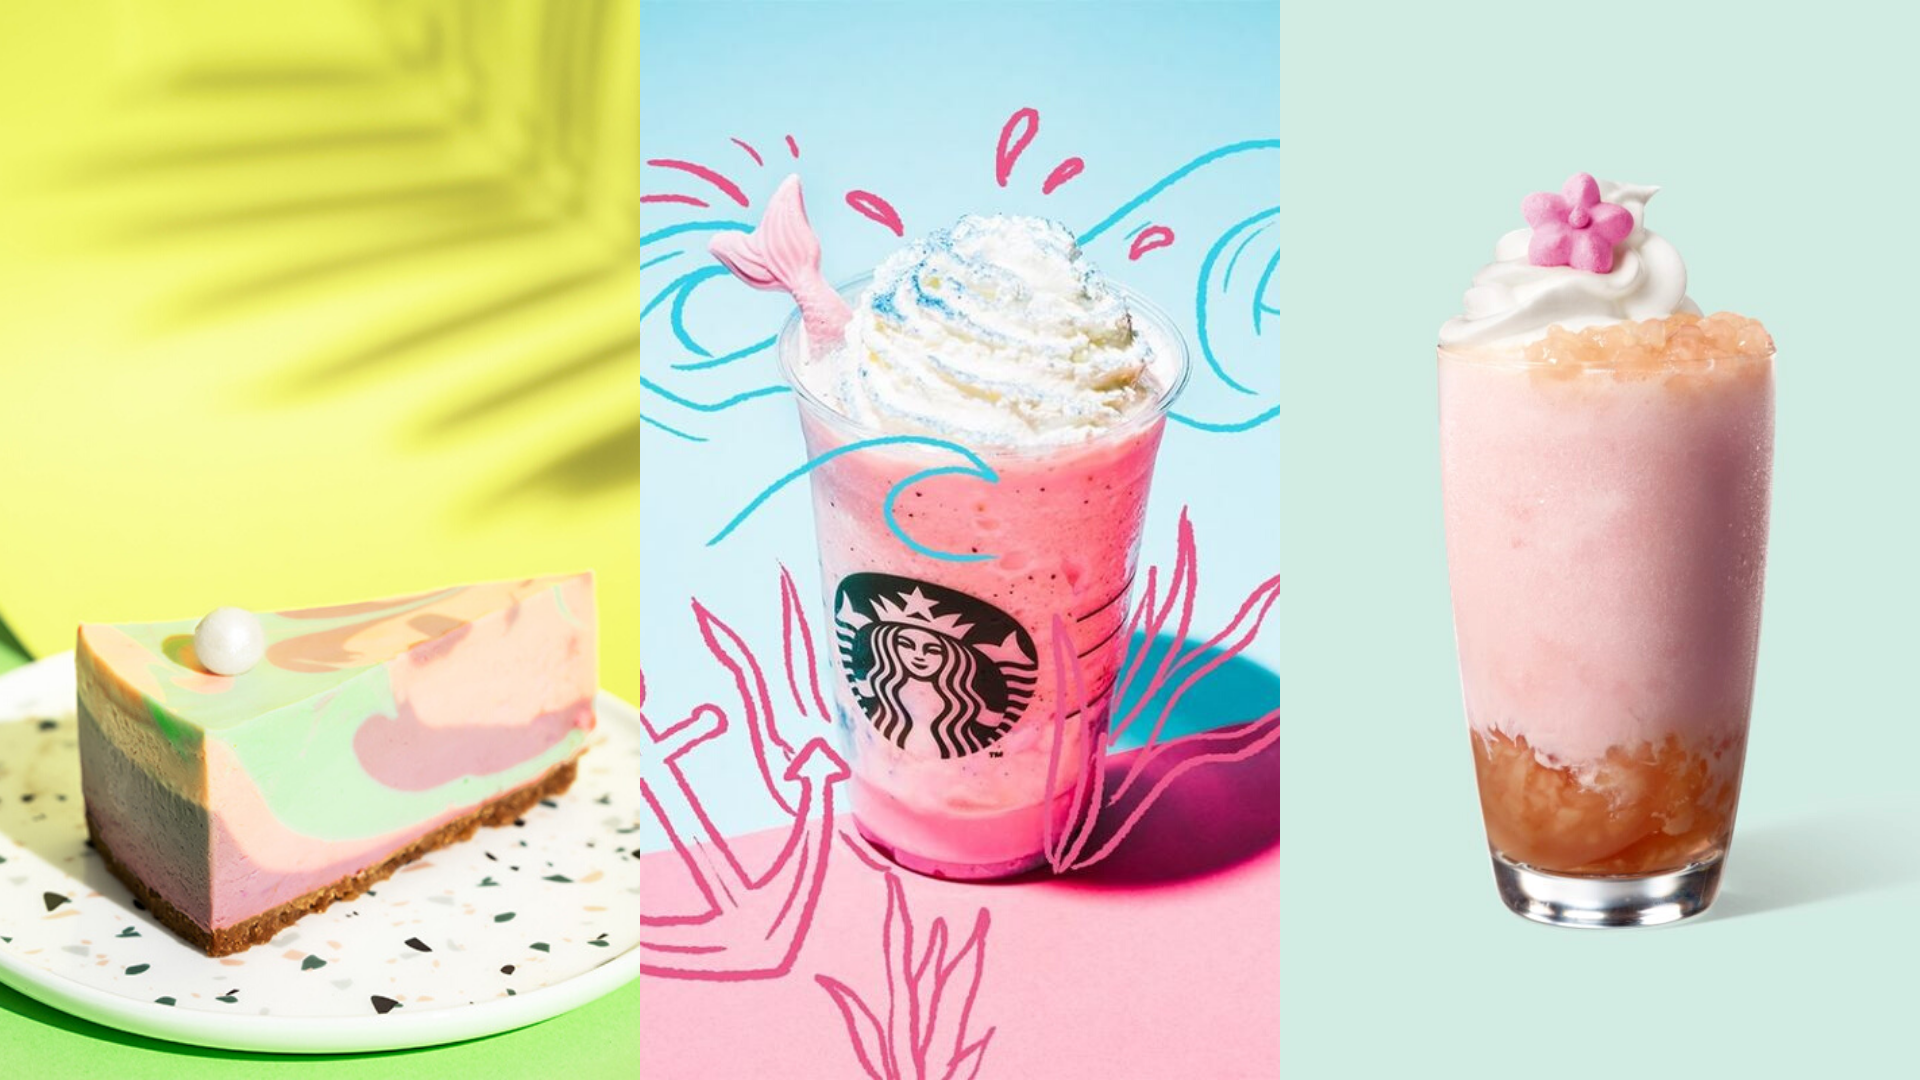 Starbucks Released New Mermazing Creations That Are Making Waves Online